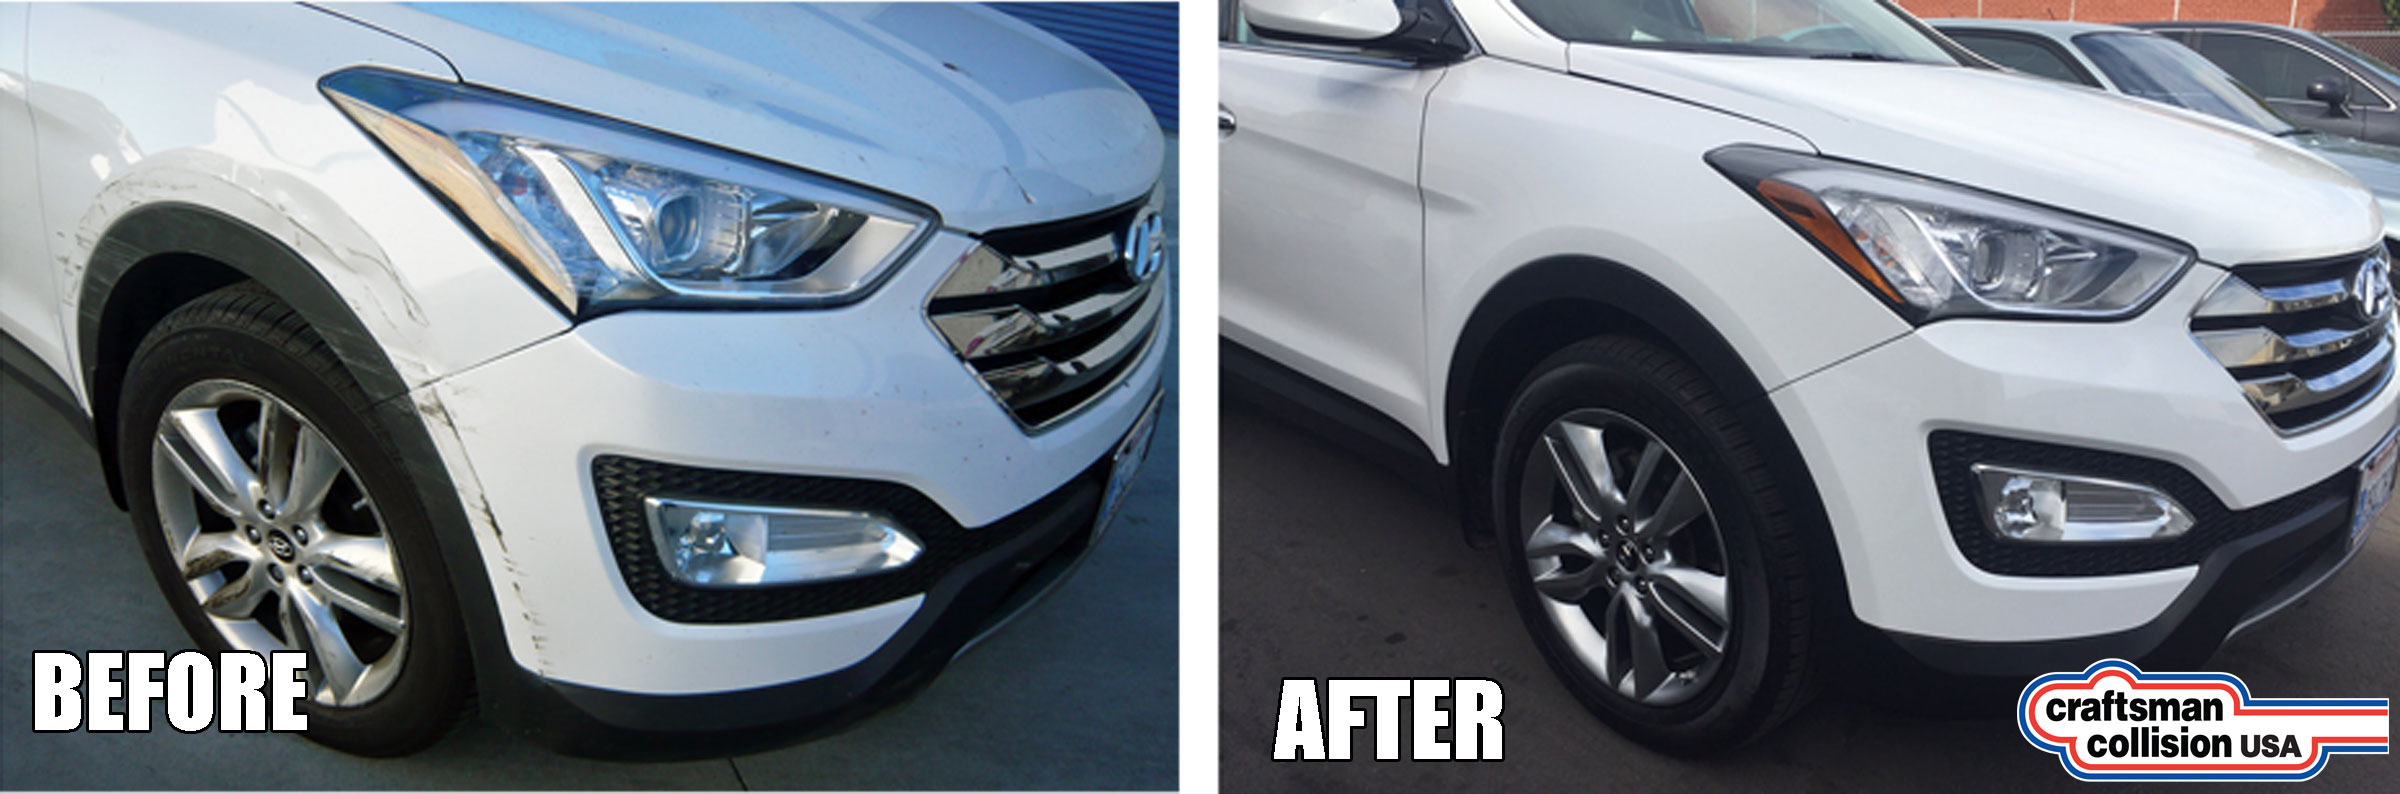 Hyundai collision repair long beach